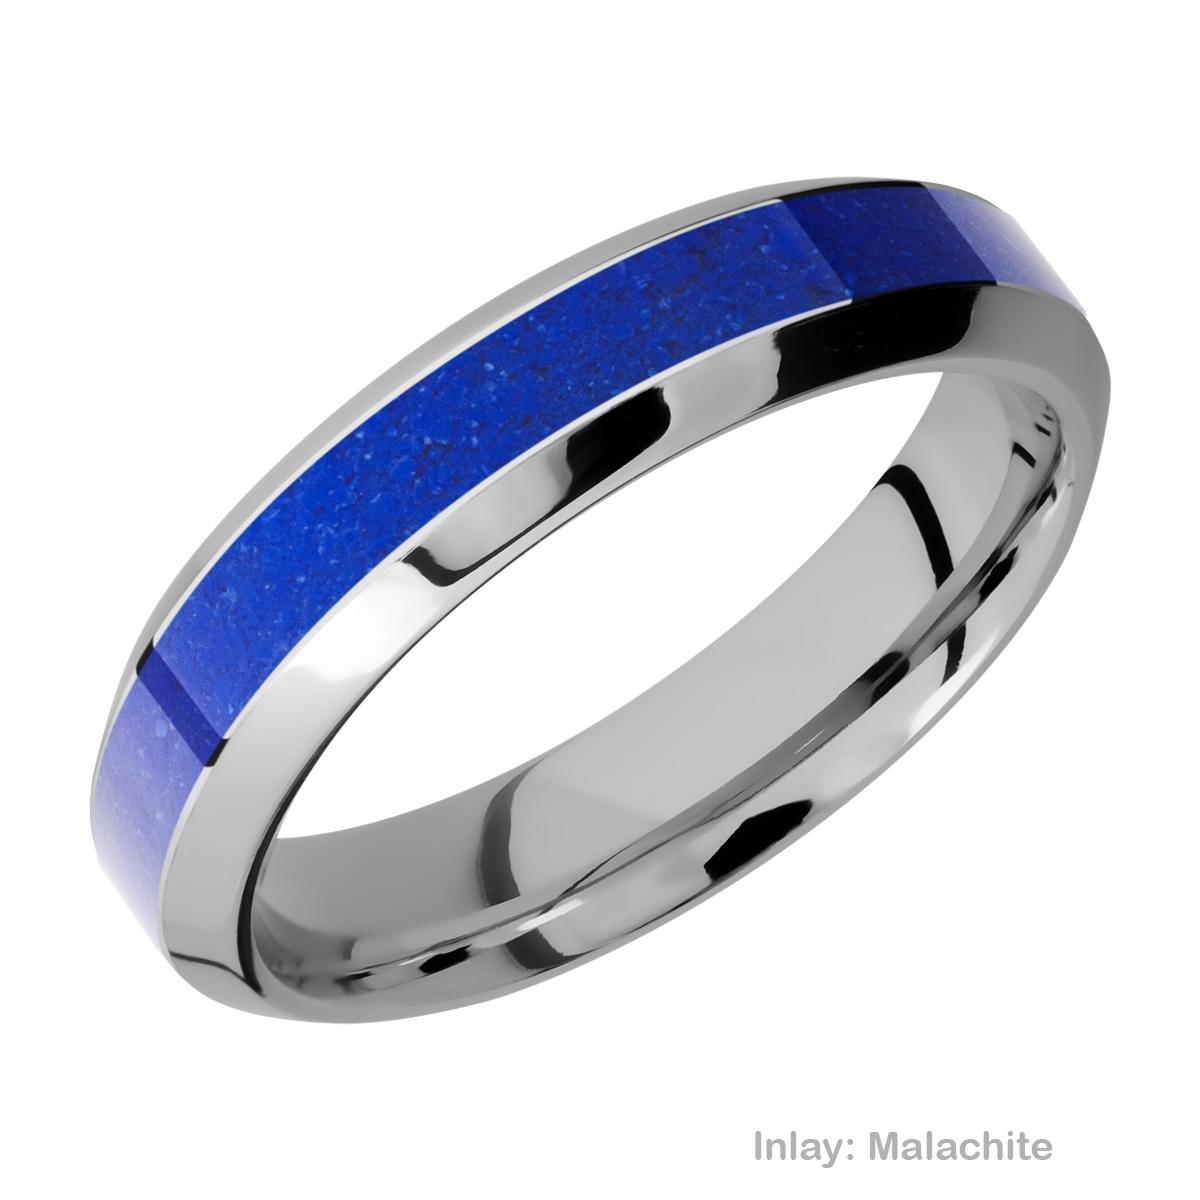 Lashbrook CC5HB12/MOSAIC Cobalt Chrome Wedding Ring or Band Alternative View 3